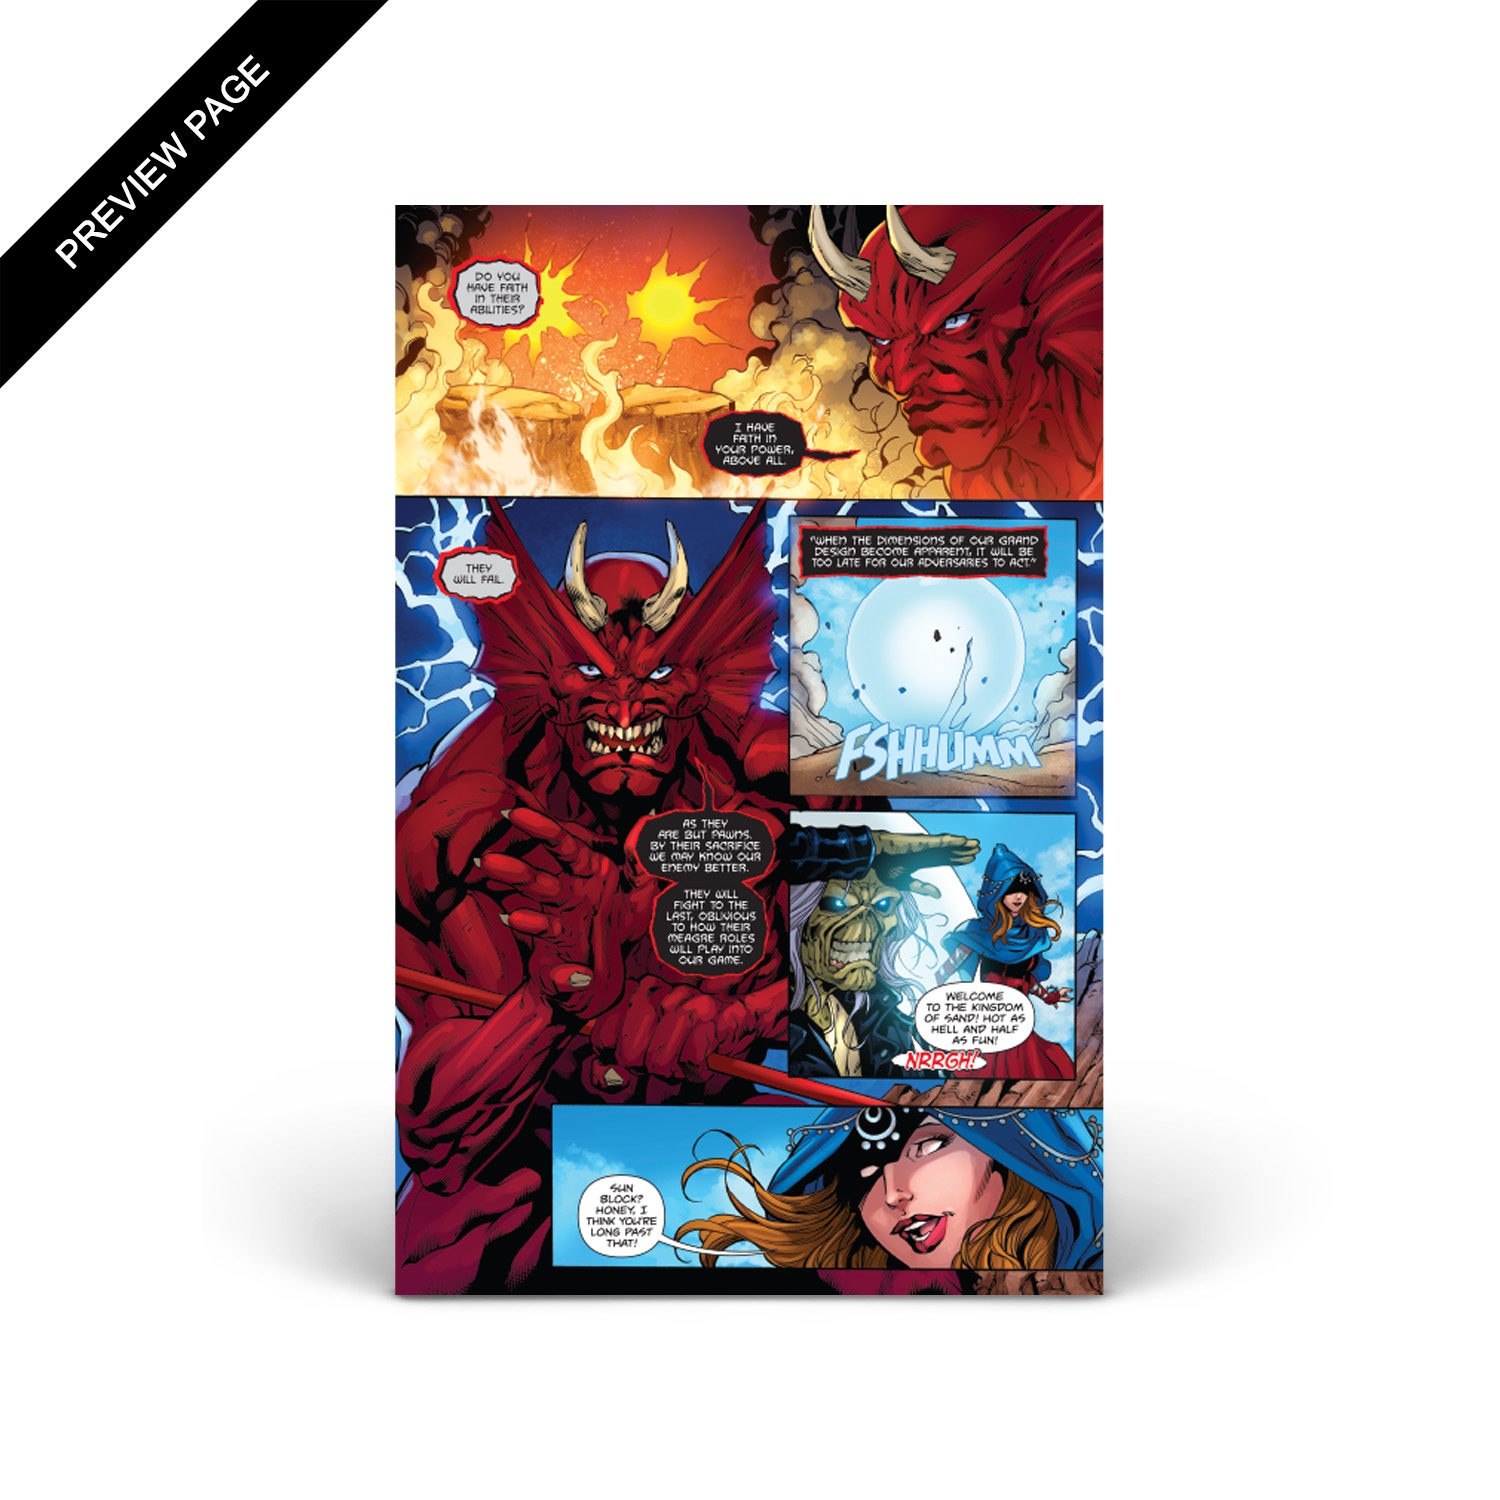 Iron Maiden - Legacy of the Beast - Volume 1 - Issue #2 - Cover C